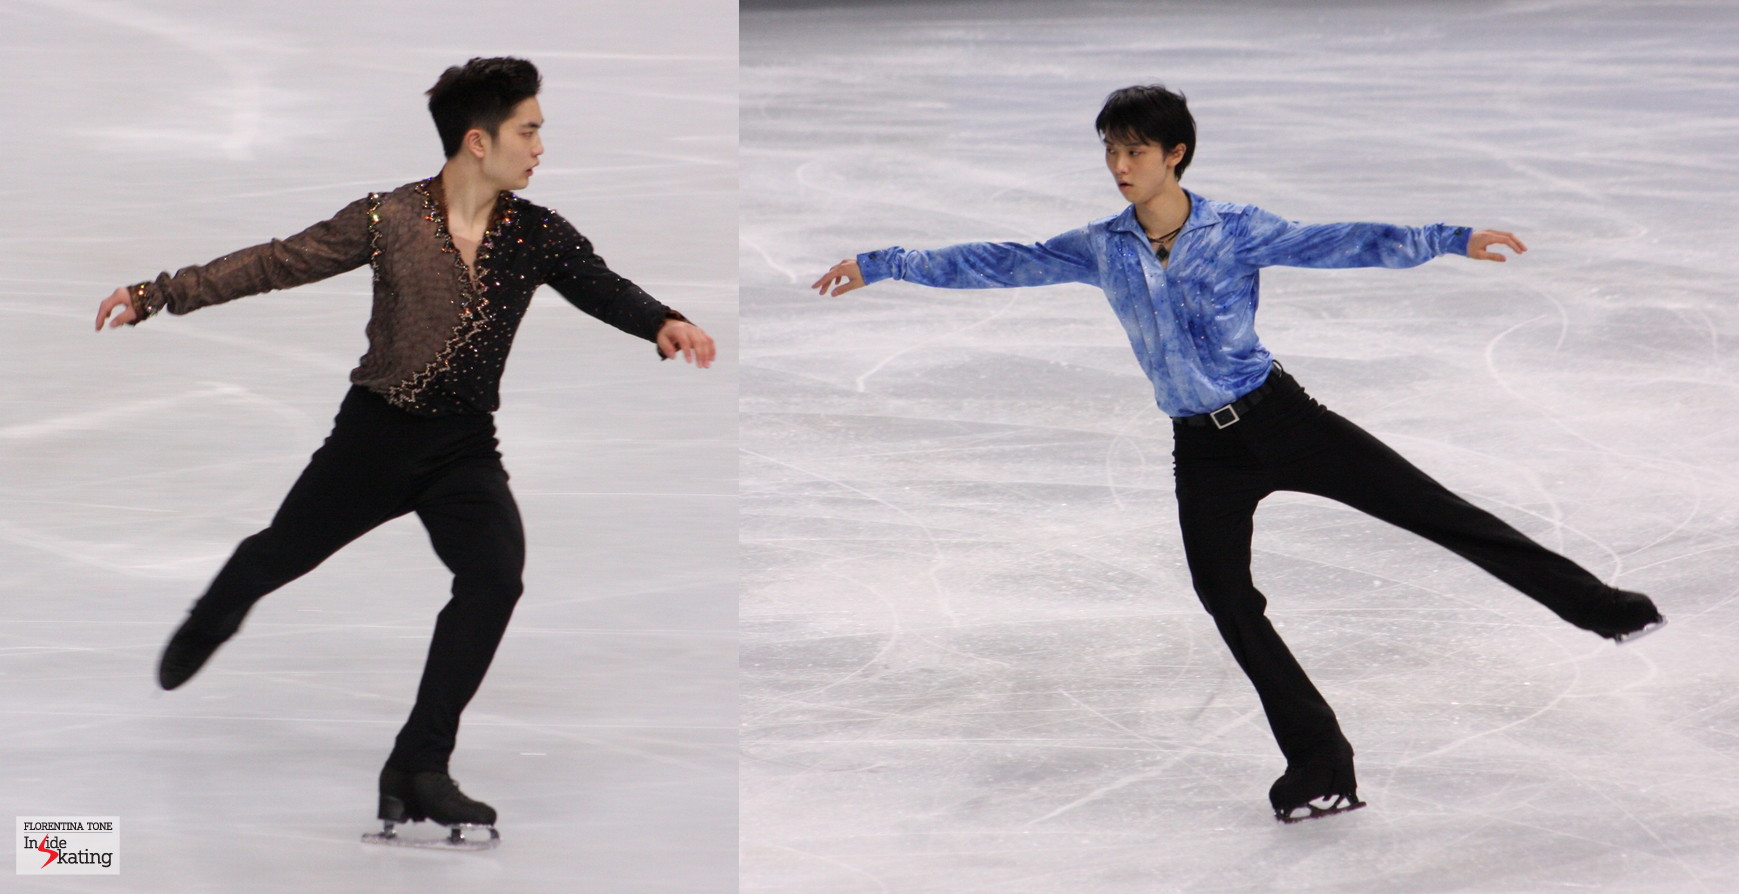 Han Yan and Yuzuru Hanyu (pictures taken last year, at the 2013 Trophee Eric Bompard in Paris)